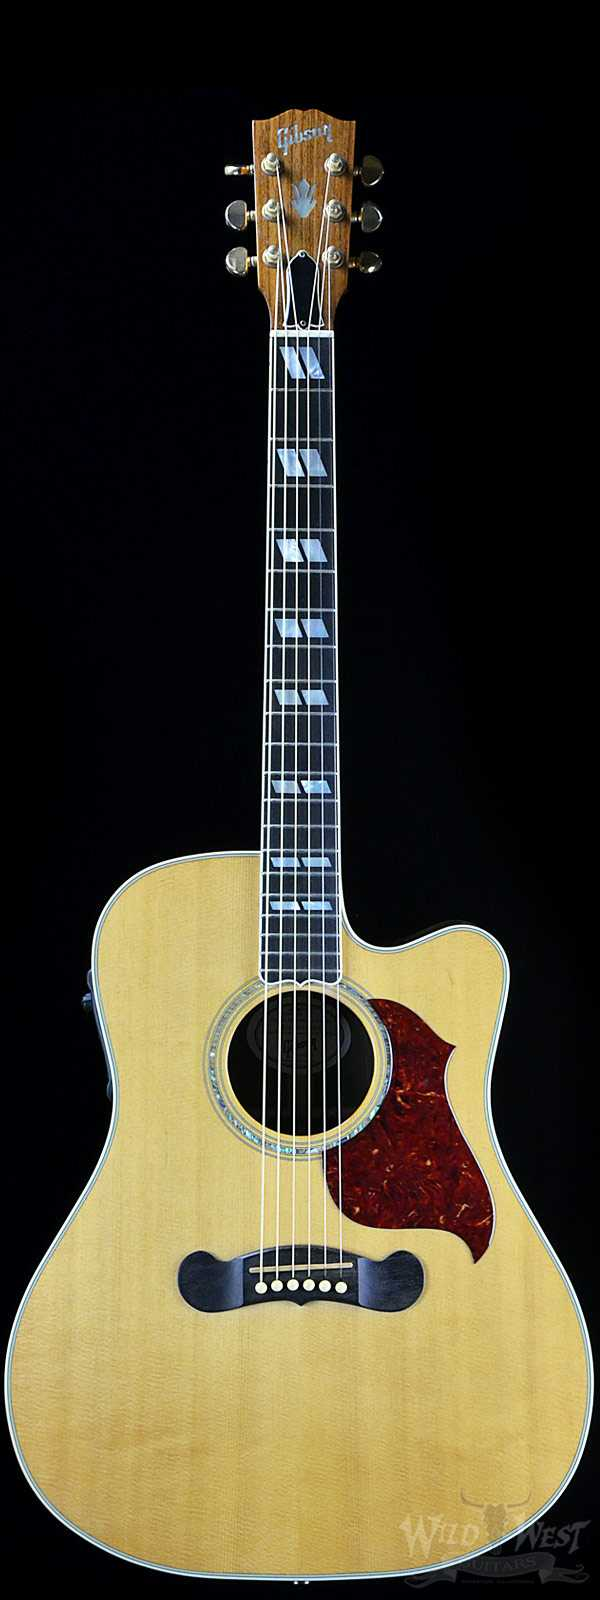 2007 Gibson The Songwriter Deluxe Studio EC SSCDANGH1 - Preowoned